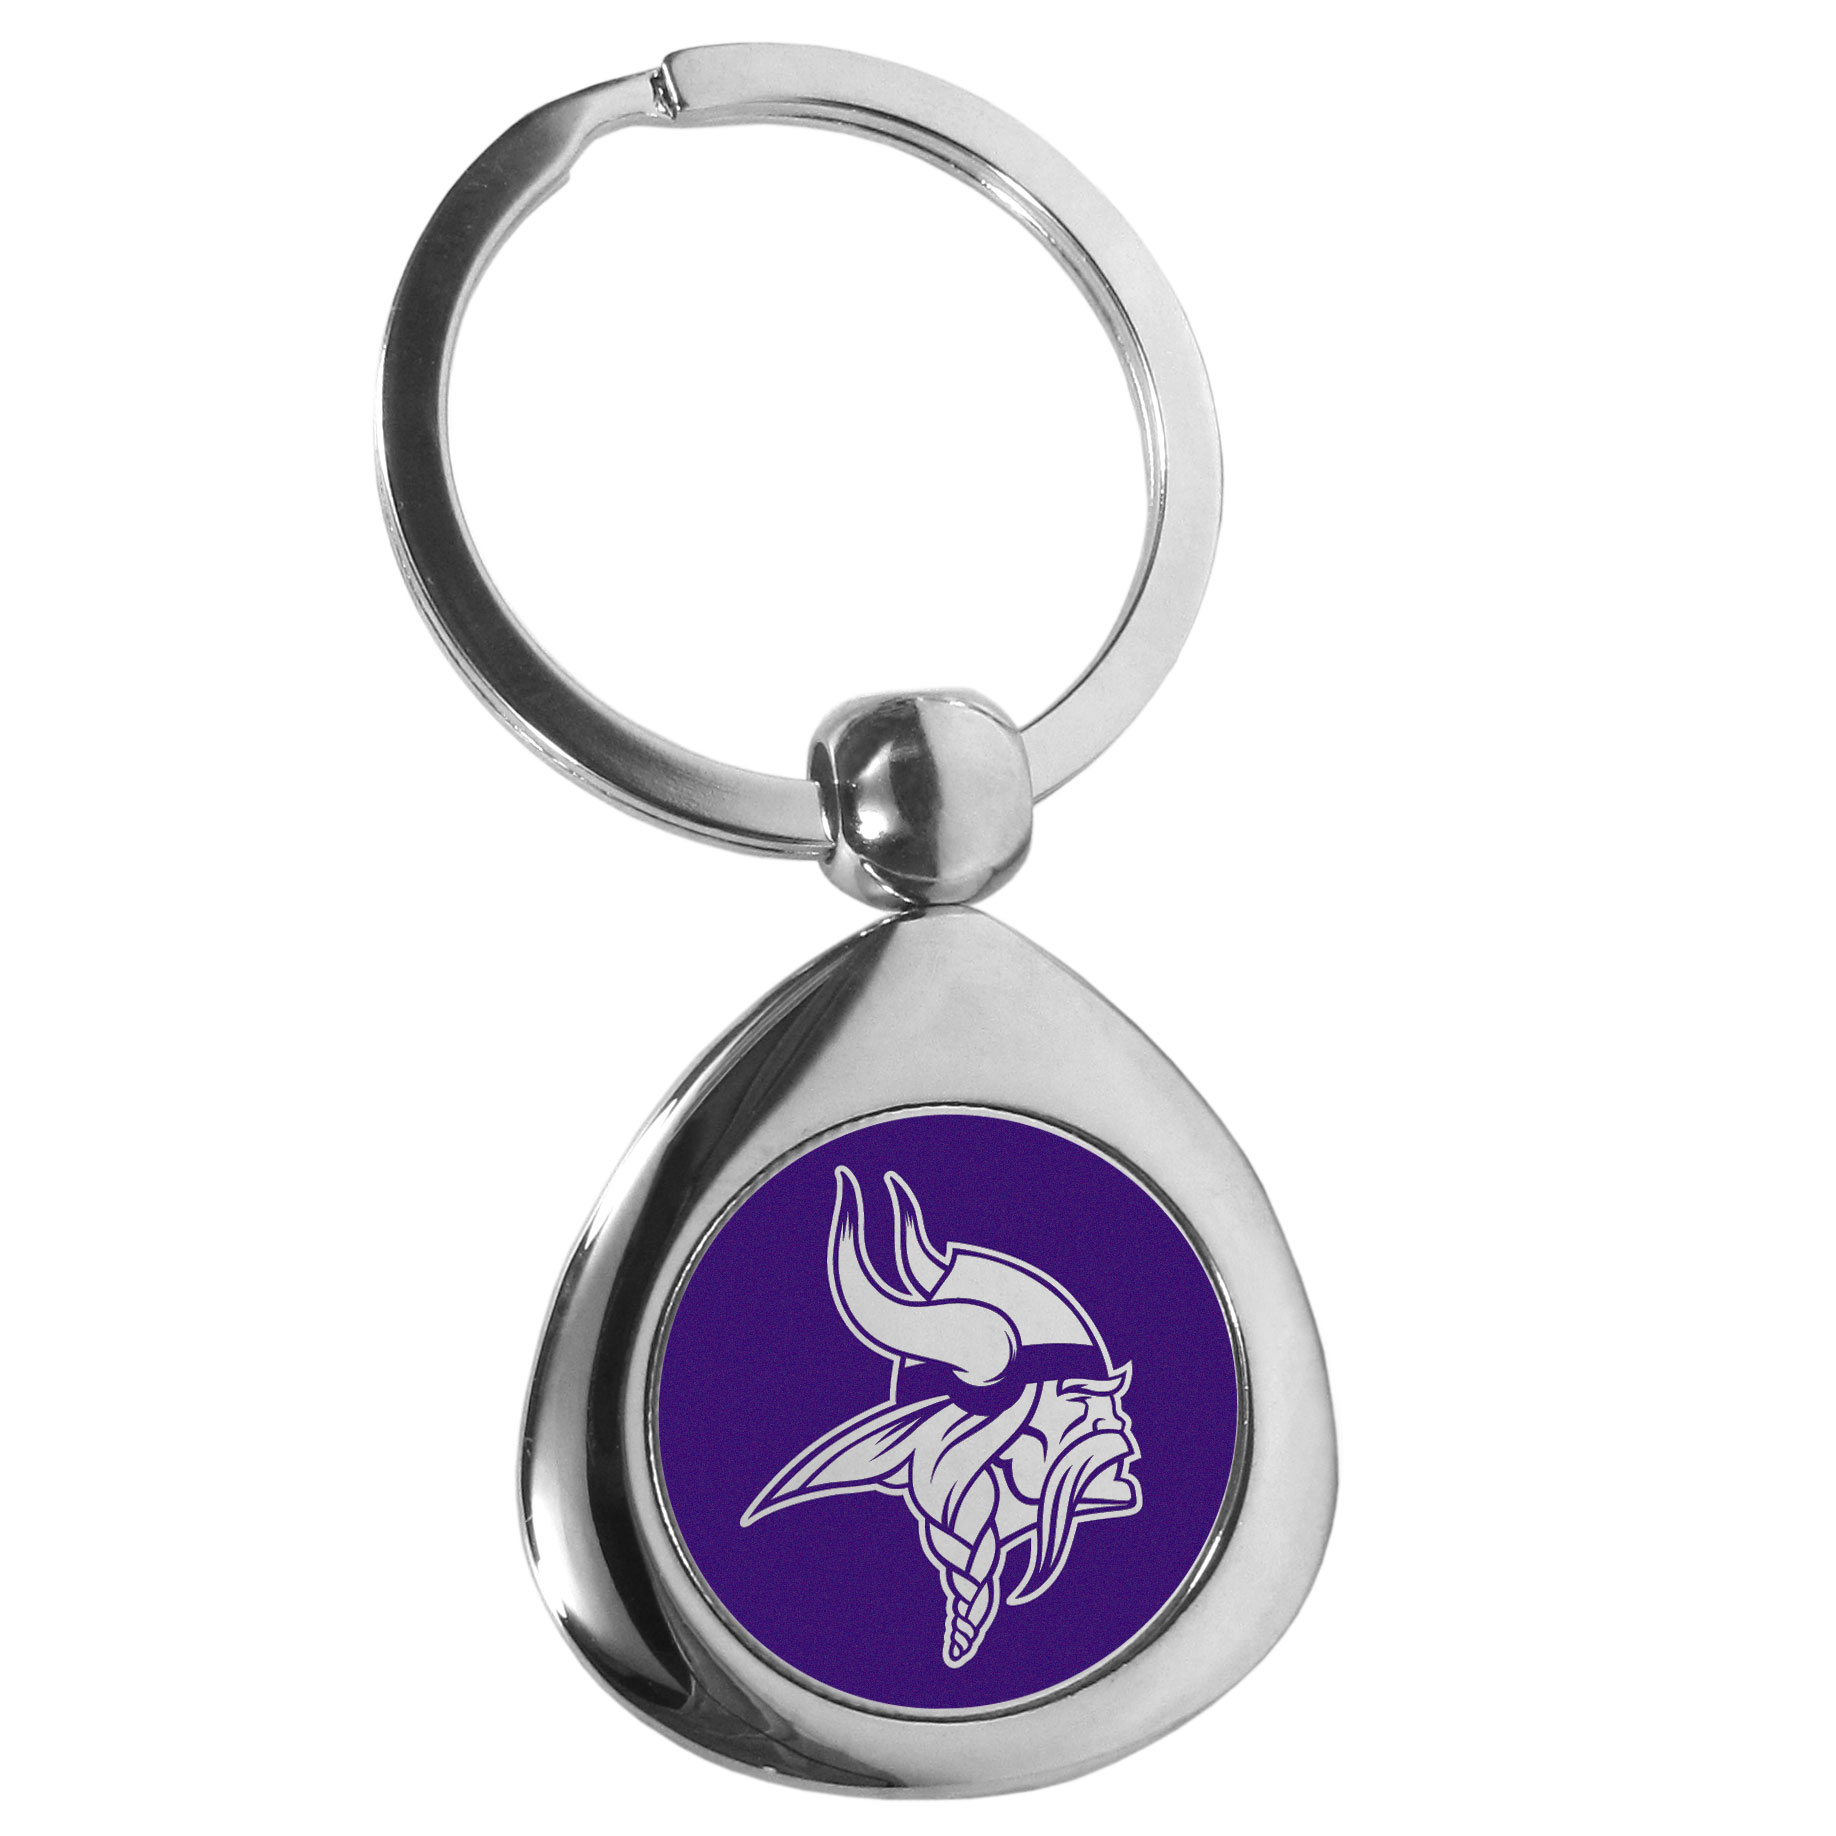 Minnesota Vikings Round Teardrop Key Chain - Our high polish chrome Minnesota Vikings round teardrop key chain has a classy look with a sporty twist. The high-quality key fob features the team logo in the team's primary color. The key ring is a flat split ring that is easier to load you home and auto keys onto.